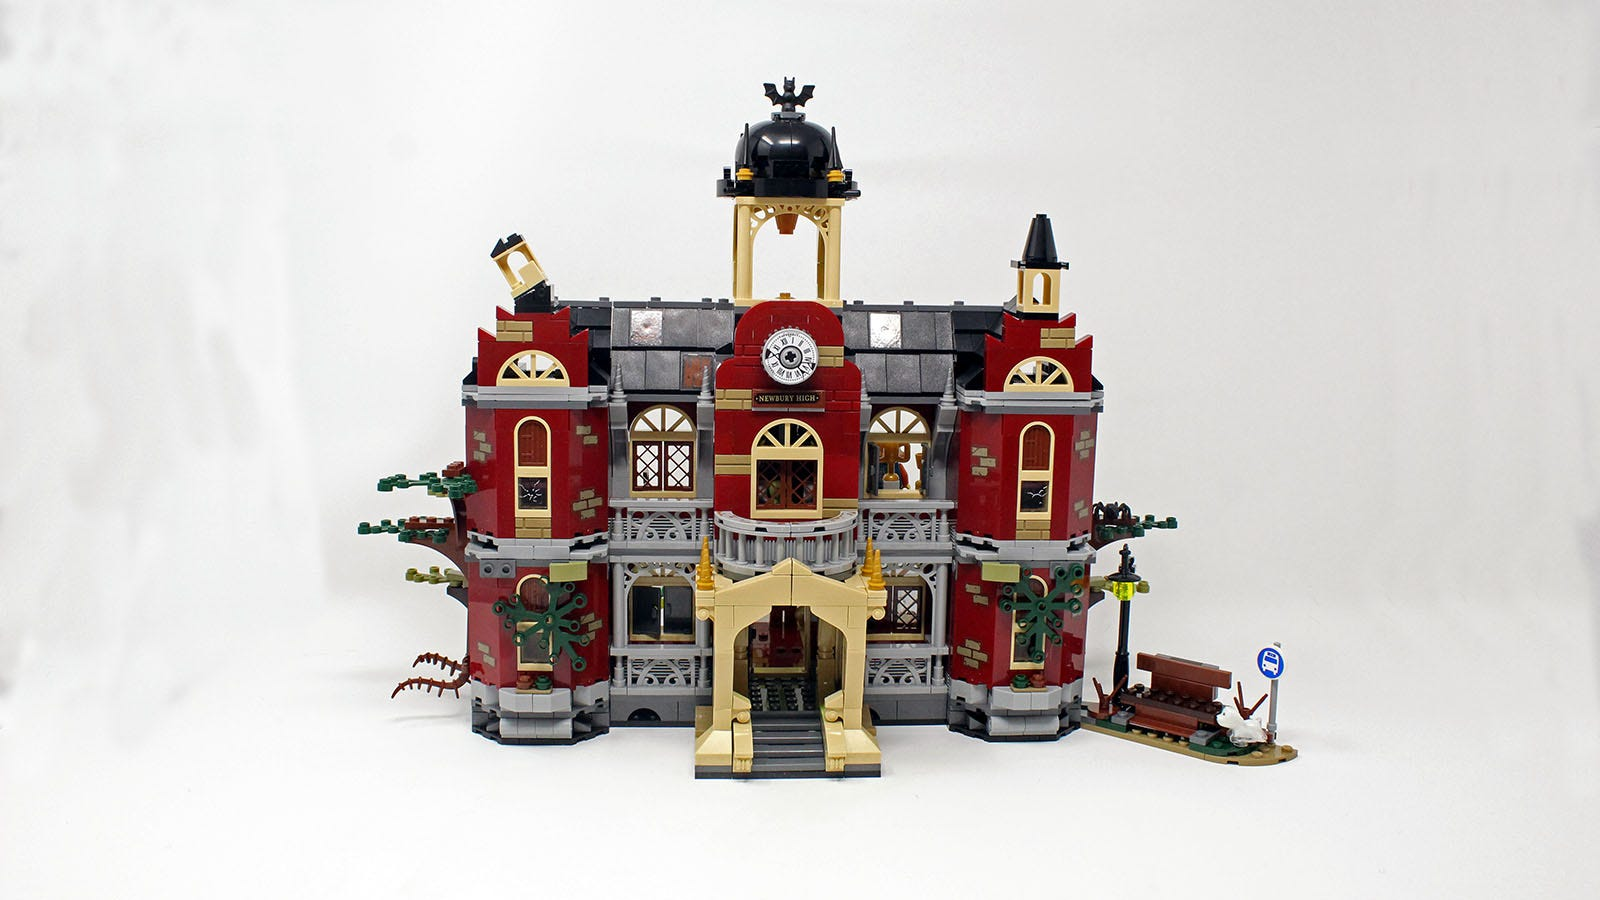 The front side of the Newbury High Lego set in regular mode, featuring a clock tower, plants, and an archway entrance.